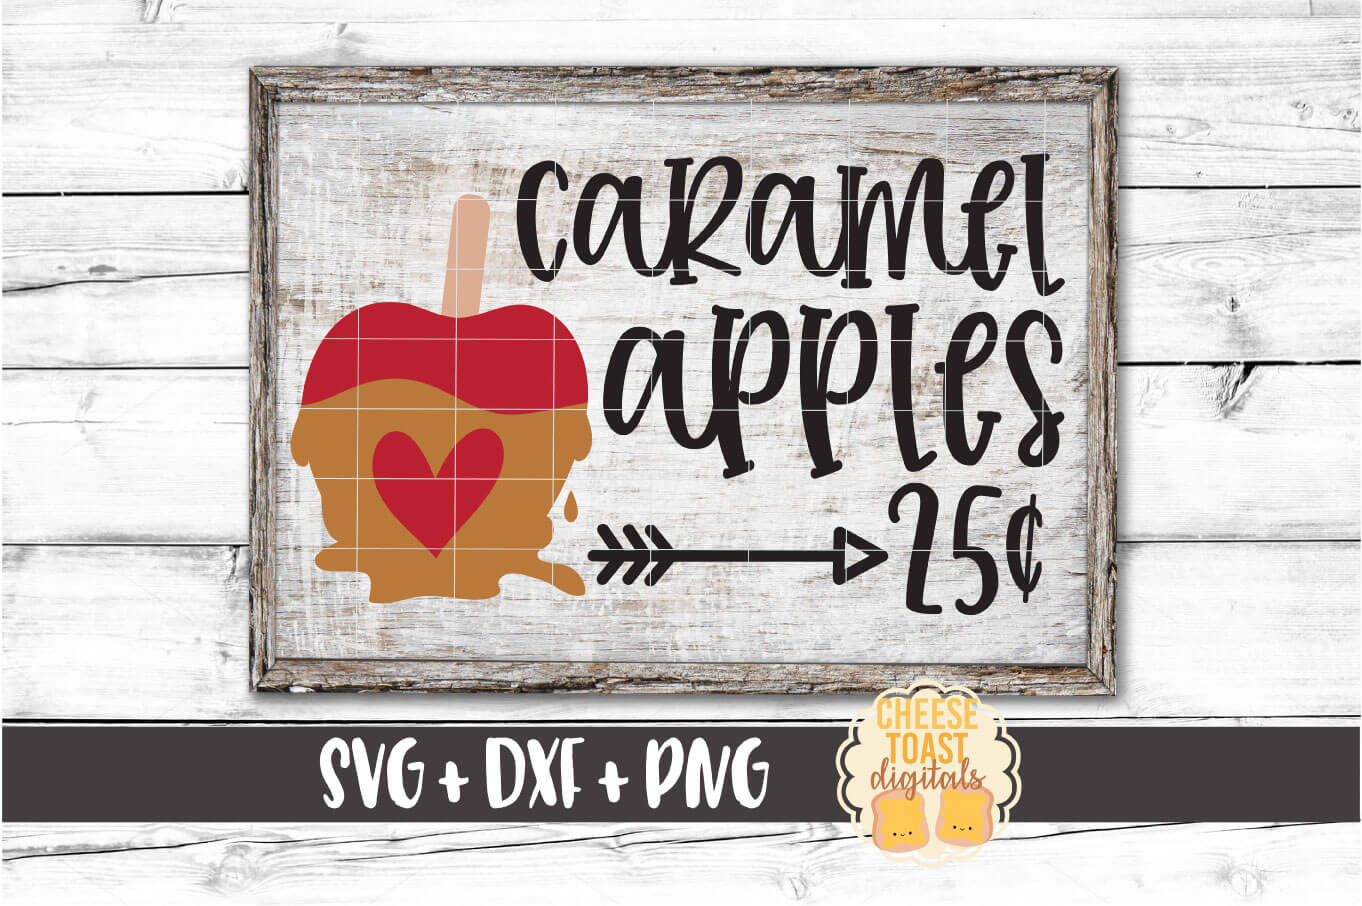 Caramel Apples 25 Cents - Fall Sign SVG PNG DXF Cut Files example image 1